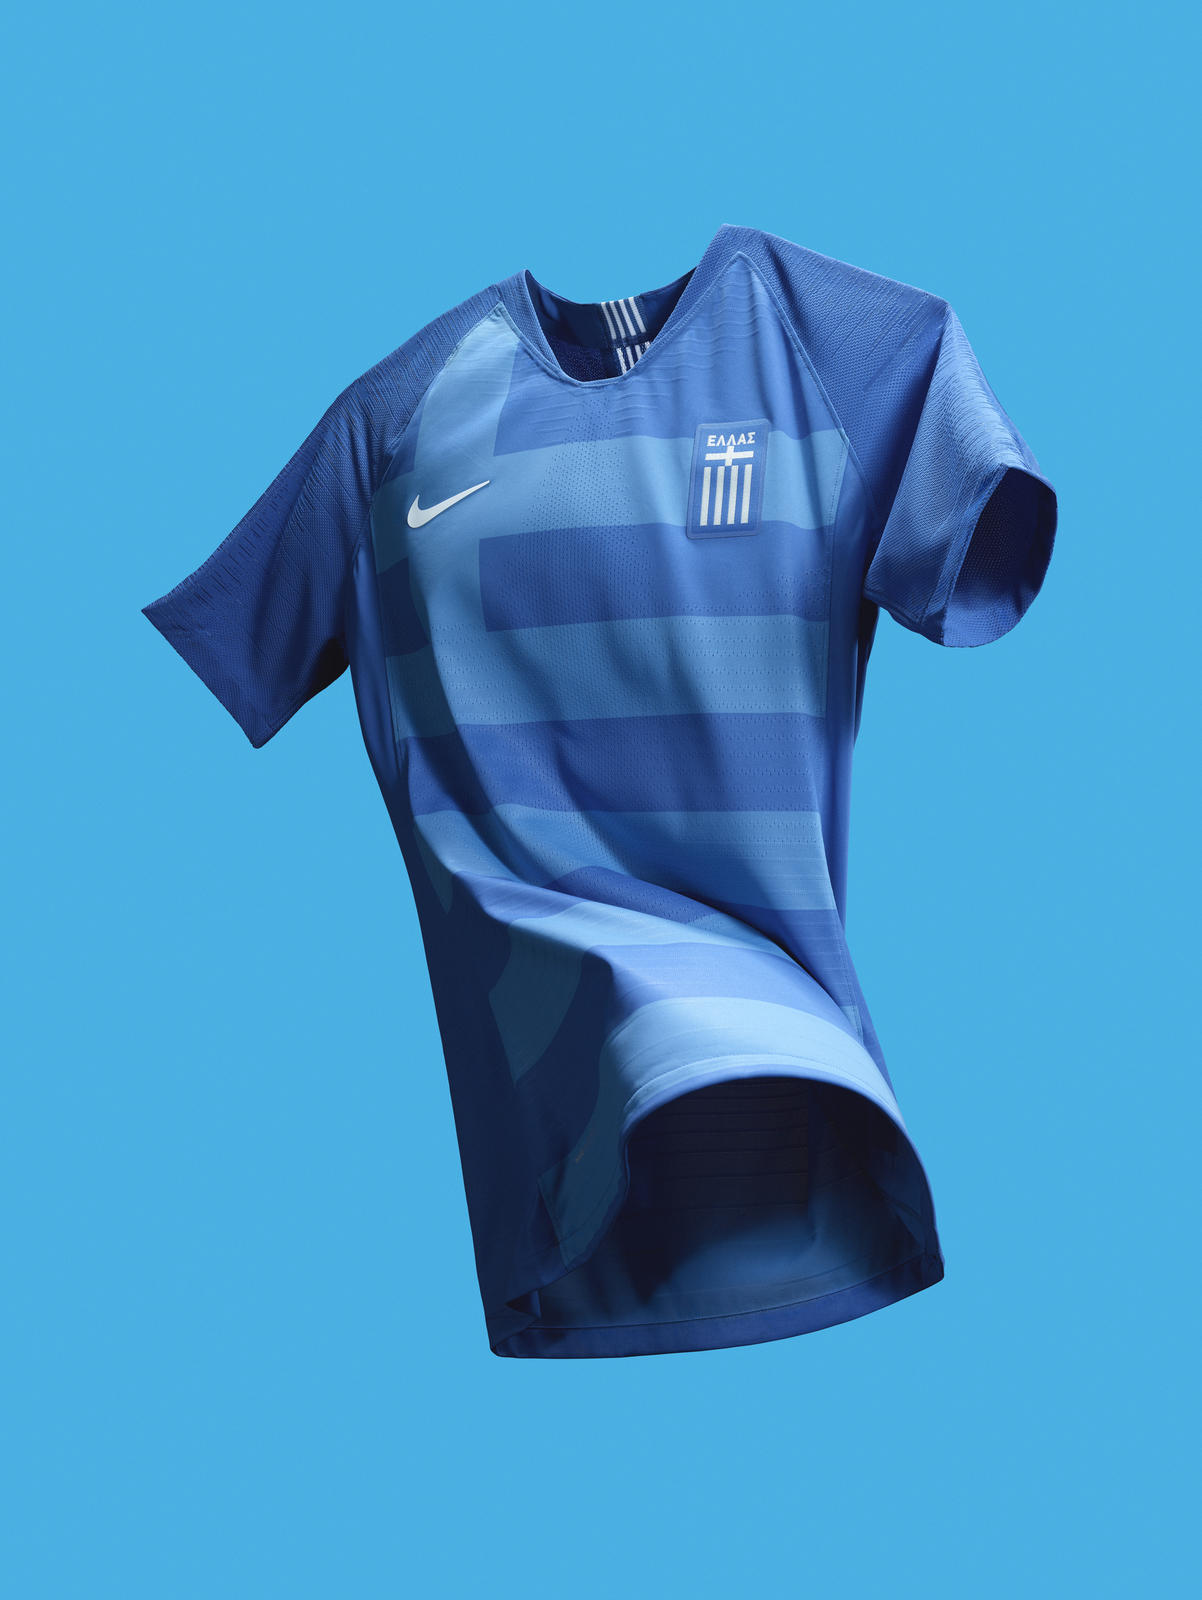 Greece's new away kit